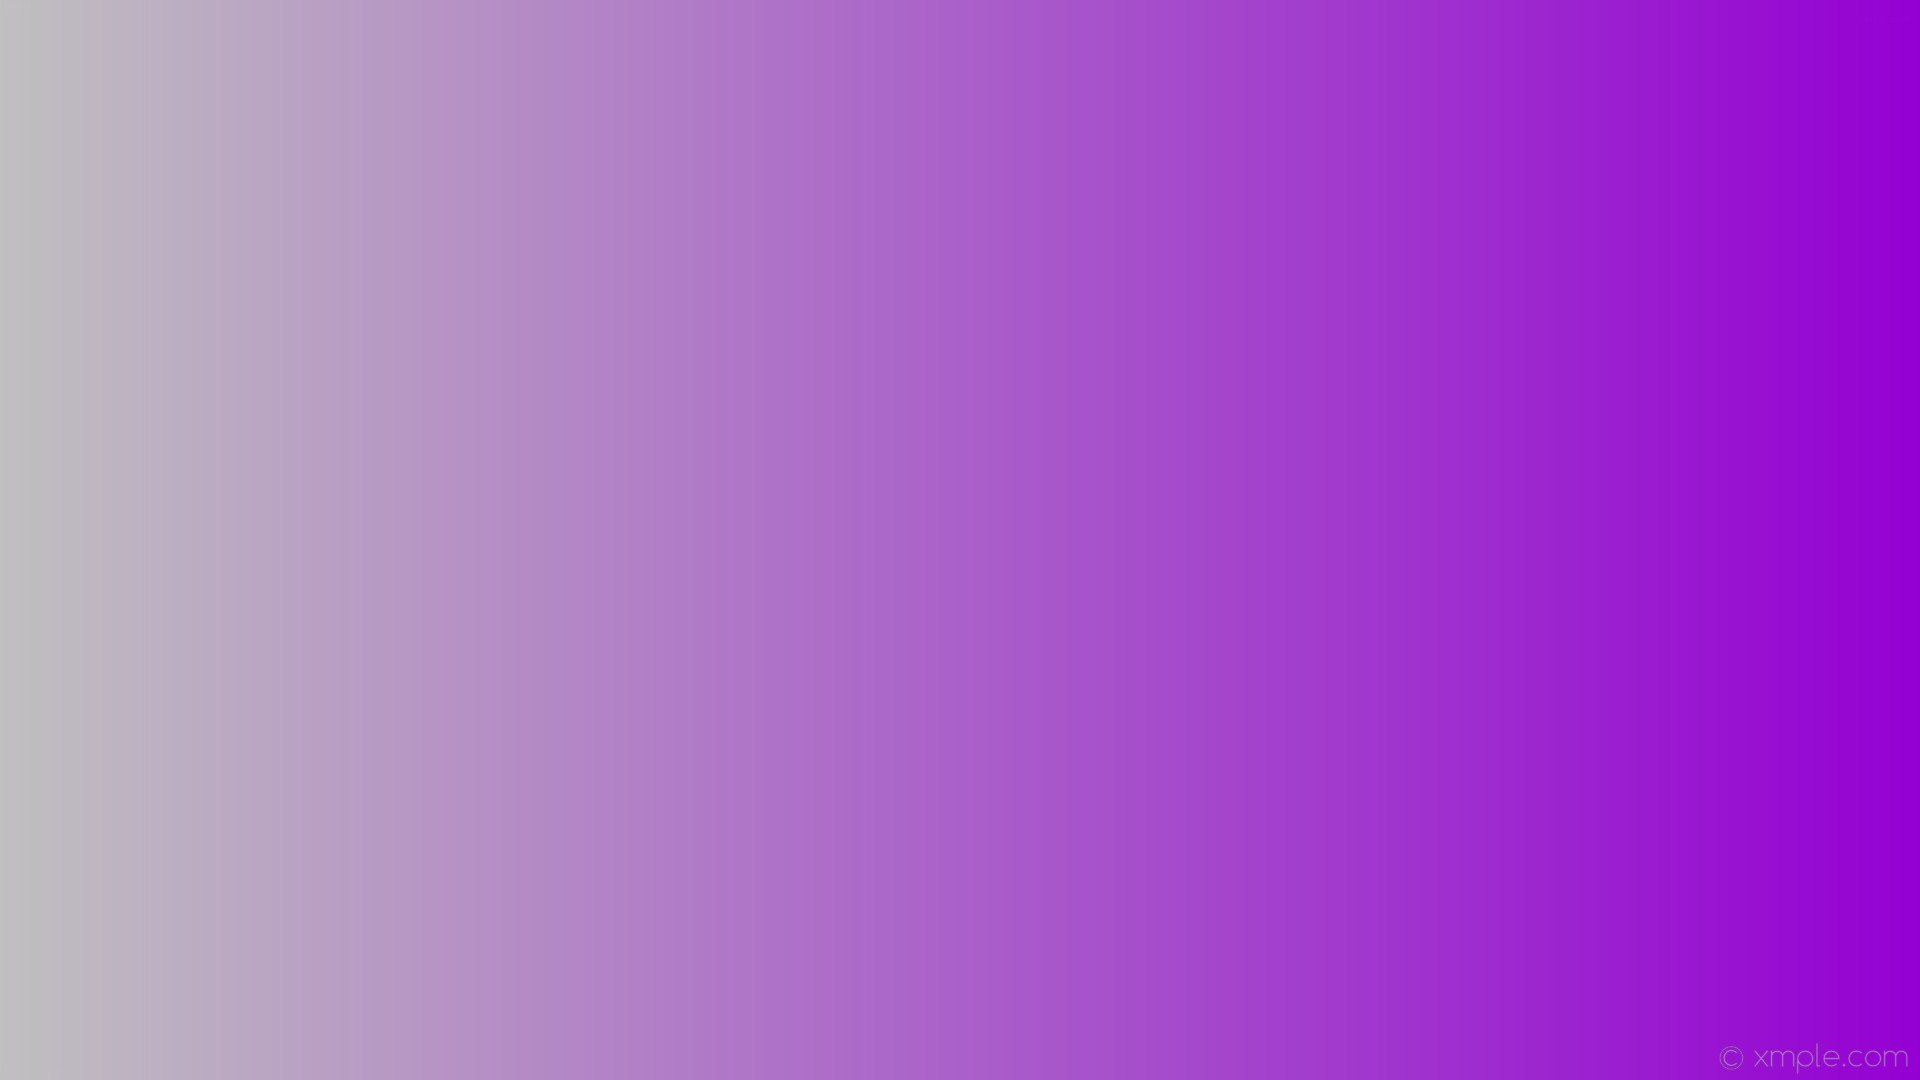 1920x1080 wallpaper purple grey gradient linear dark violet silver #9400d3 #c0c0c0 0°